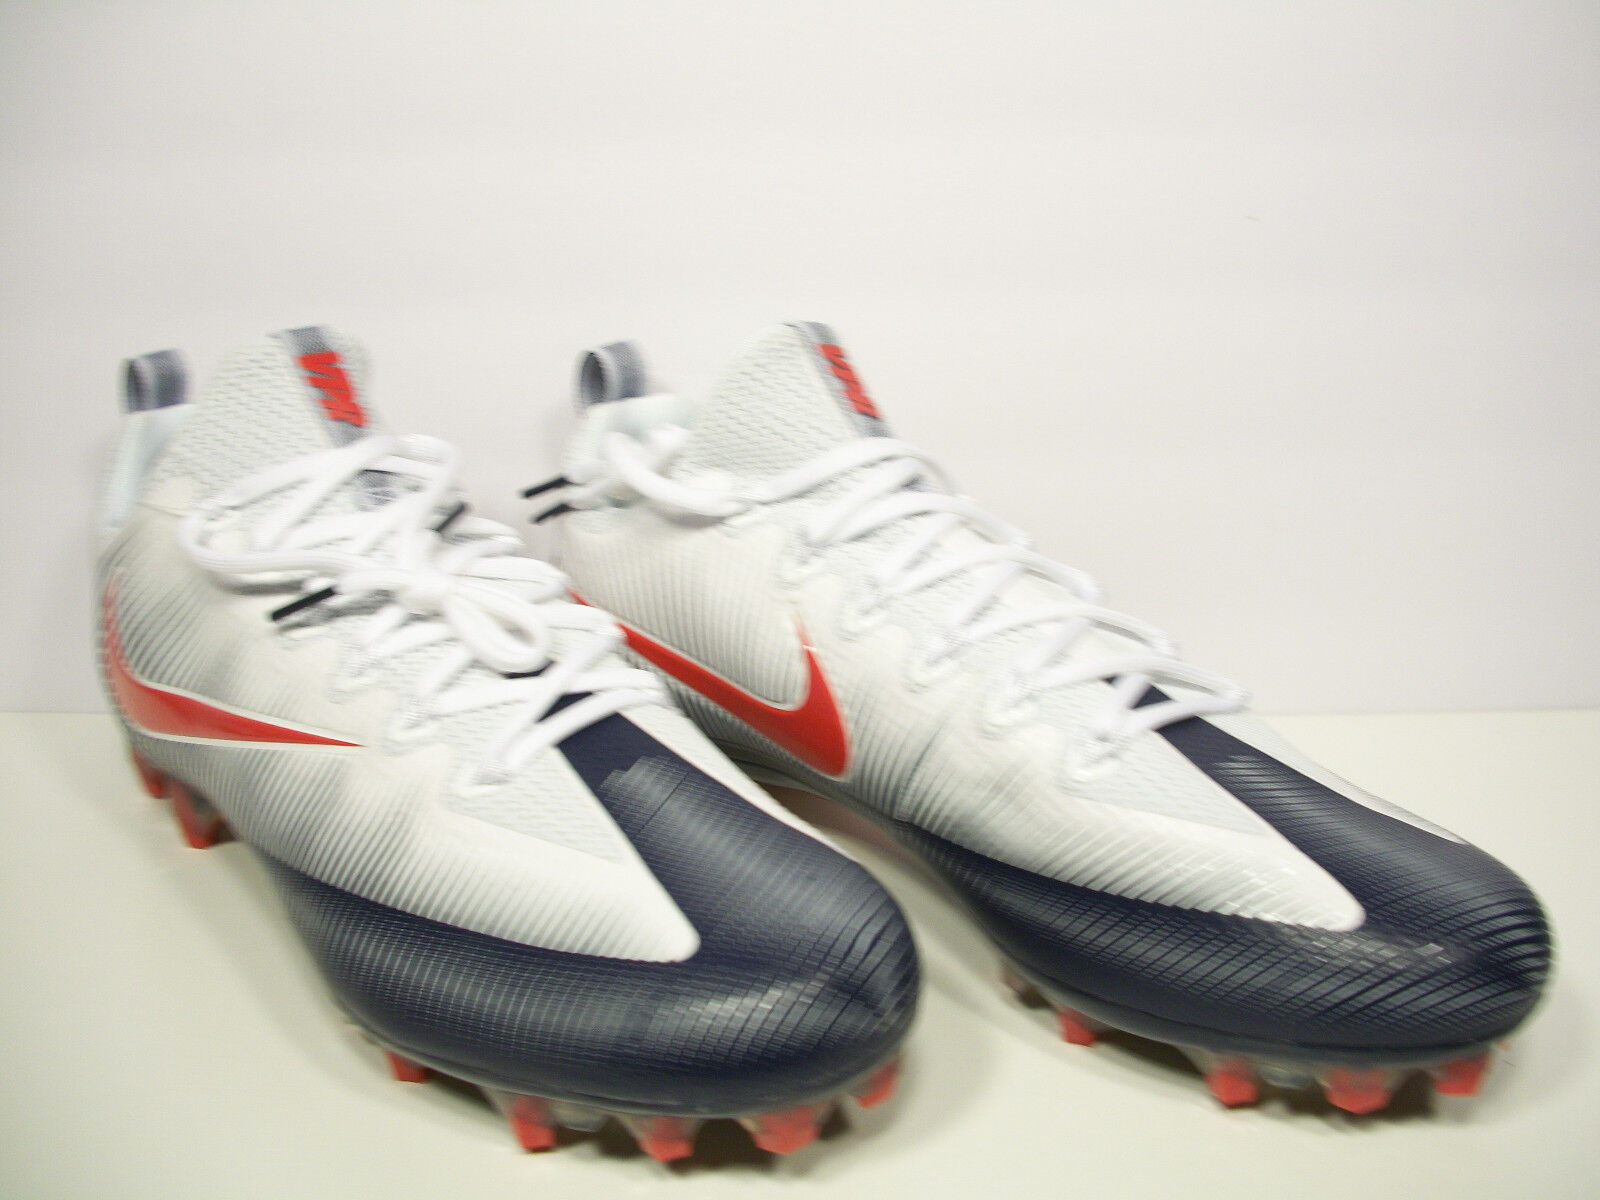 NIKE Vapor Untouchable Pro Football Cleats 925423-419 Red bluee White Size 12.5